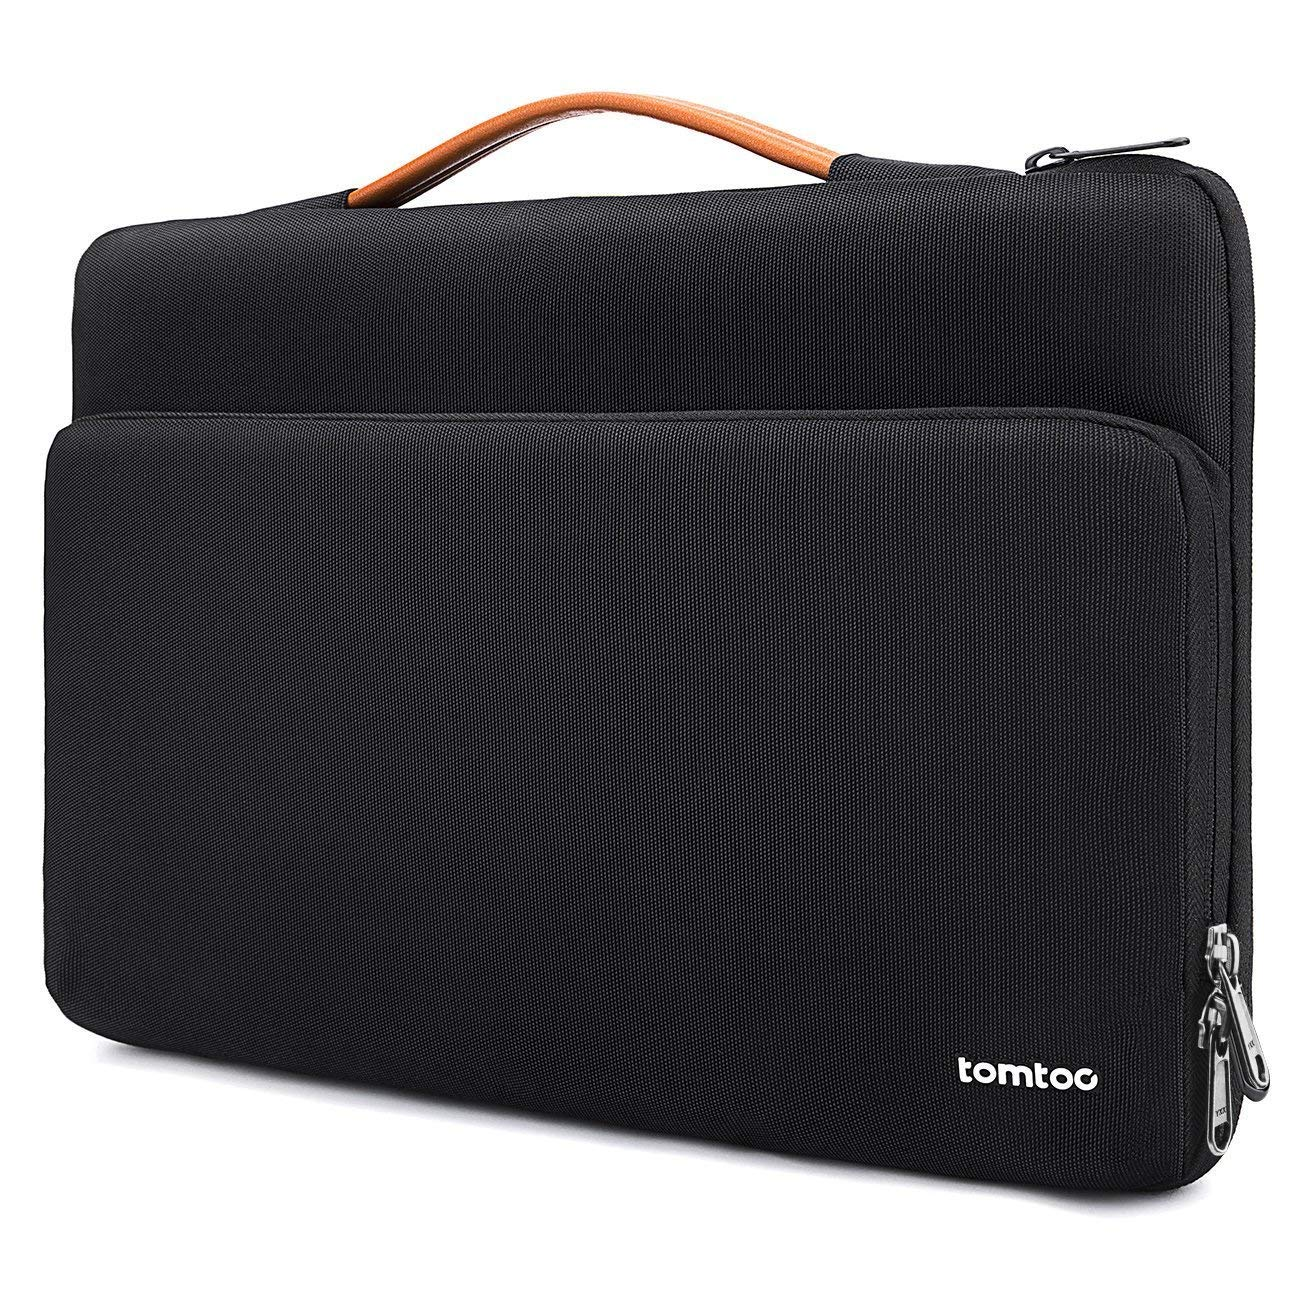 tomtoc 360 Protective Laptop Carrying Case for 15.6 Inch Acer Aspire 5 Slim Laptop, 15.6 HP Pavilion, 15.6 Inch ASUS ROG Zephyrus and More Dell Asus ThinkPad 15 Inch Laptop Notebook by tomtoc